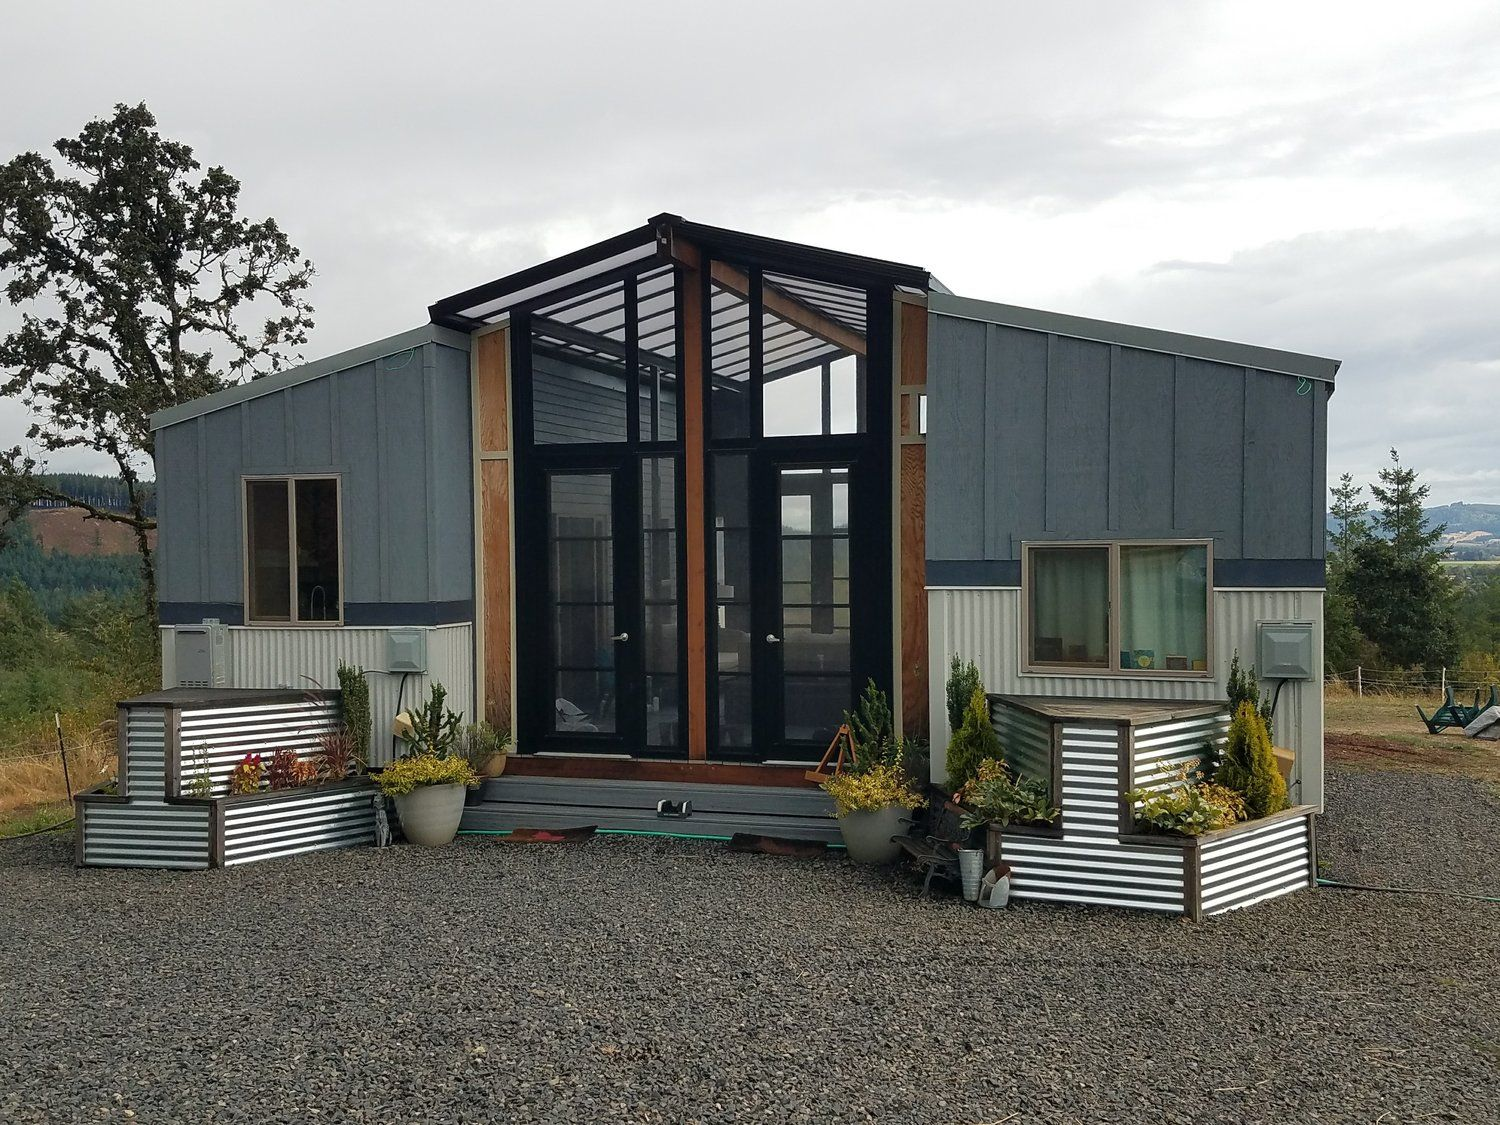 The Ohana 2 24 Tiny Homes Connected With A Sunroom Deck In Between Portland Or Tiny House Listings Tiny House Nation Tiny House Inspiration